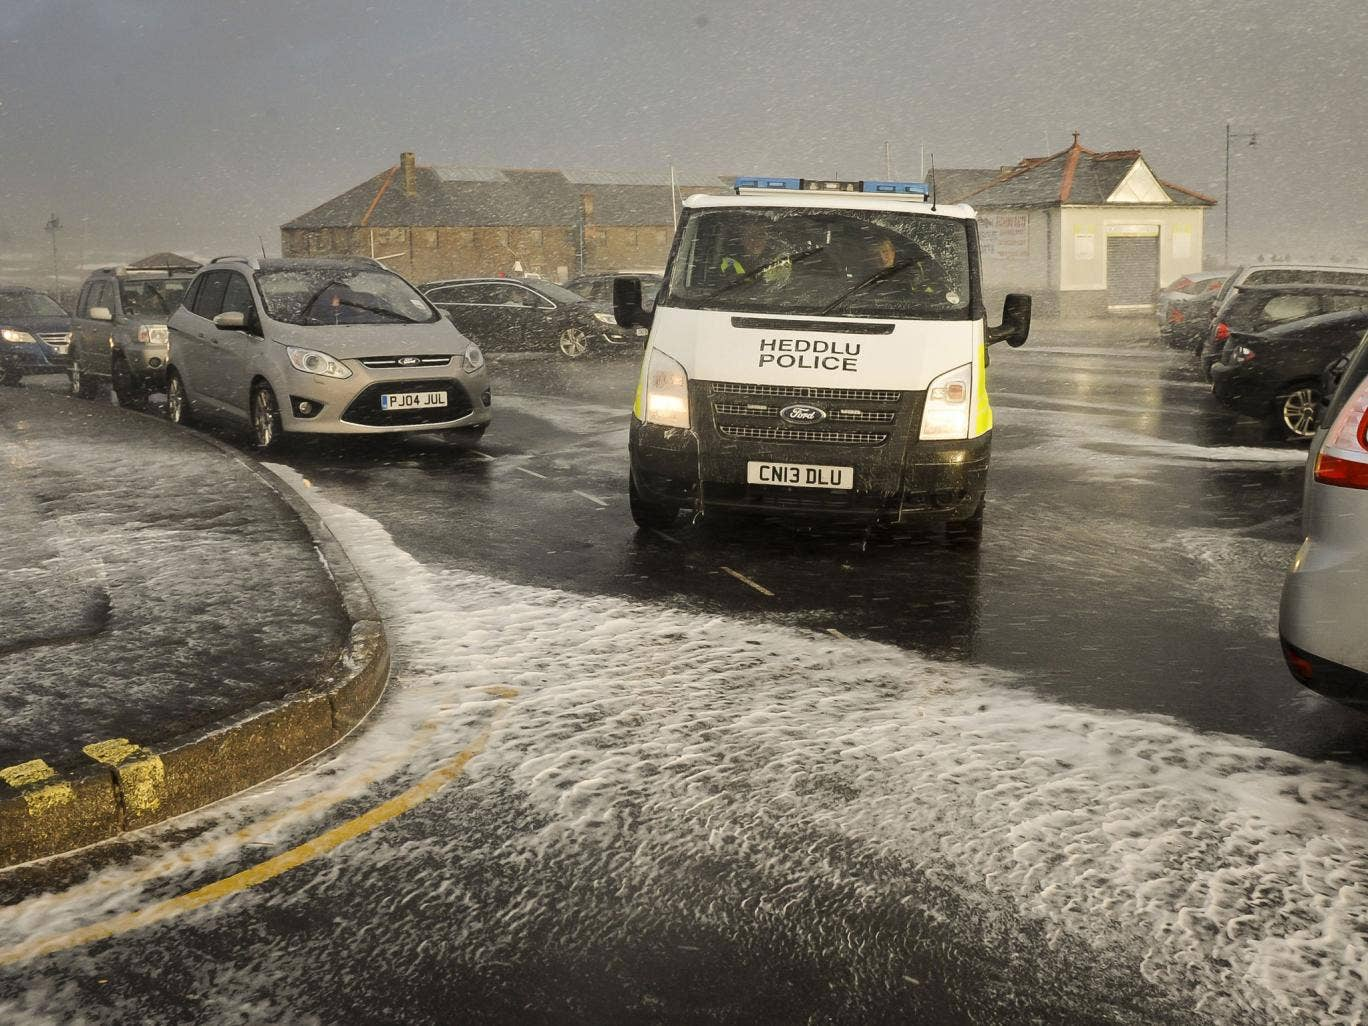 A police van makes its way through the sea spray and foam on the Esplanade, Porthcawl, south Wales (Wednesday), as the region continues to be battered by high winds and heavy rain